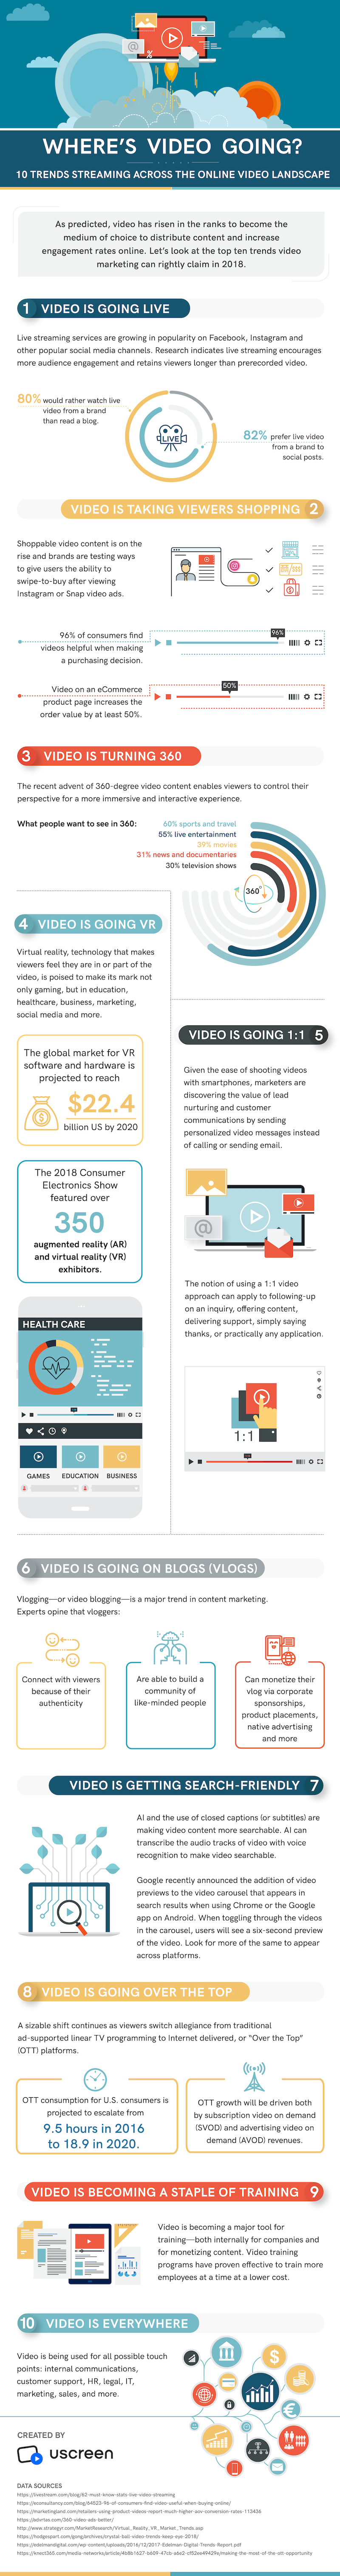 Video internet trends Infographic 2018